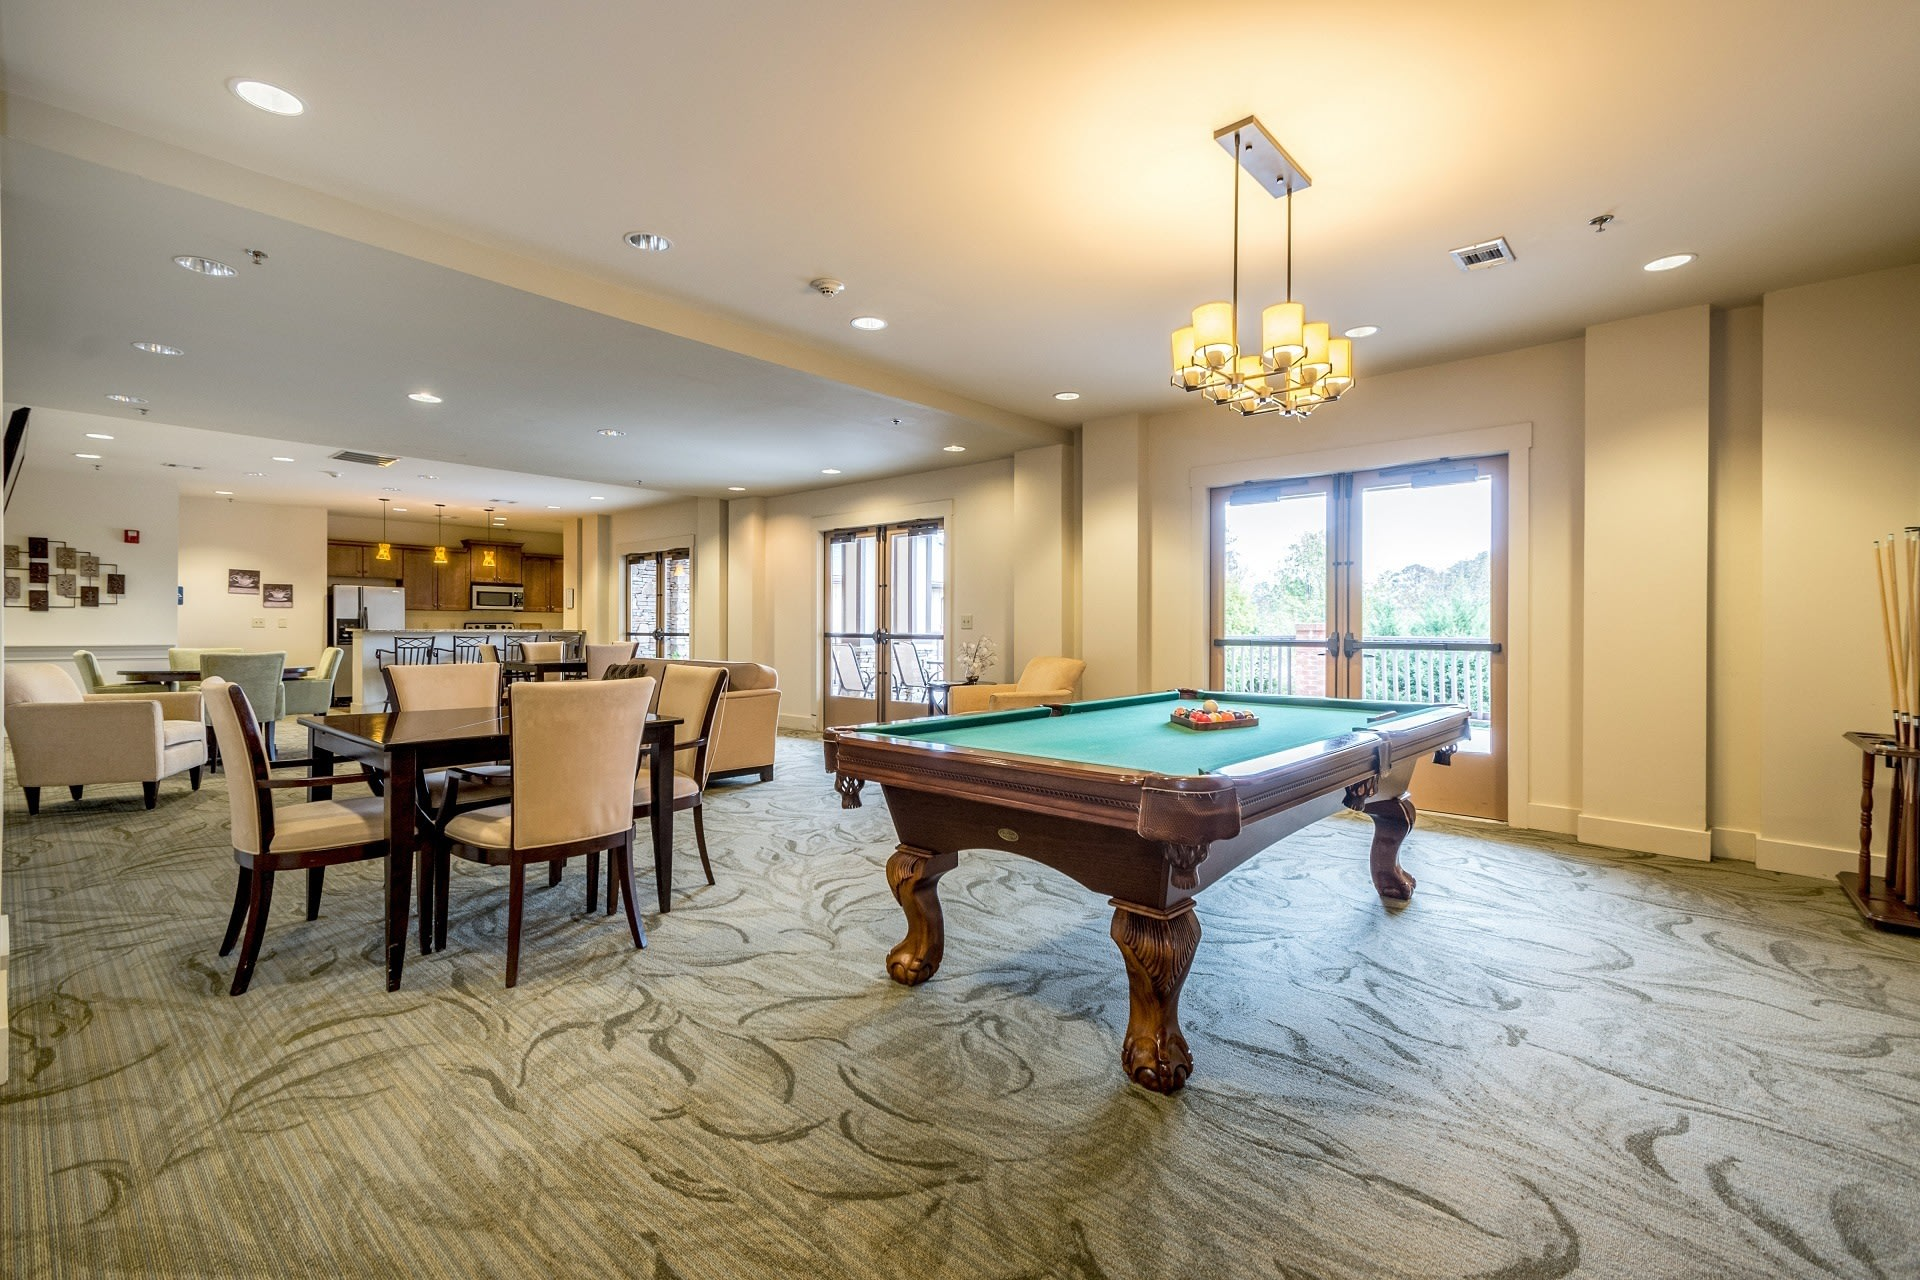 Lots of seating and space to spend time with family and friends at our senior living social room in Suwanee